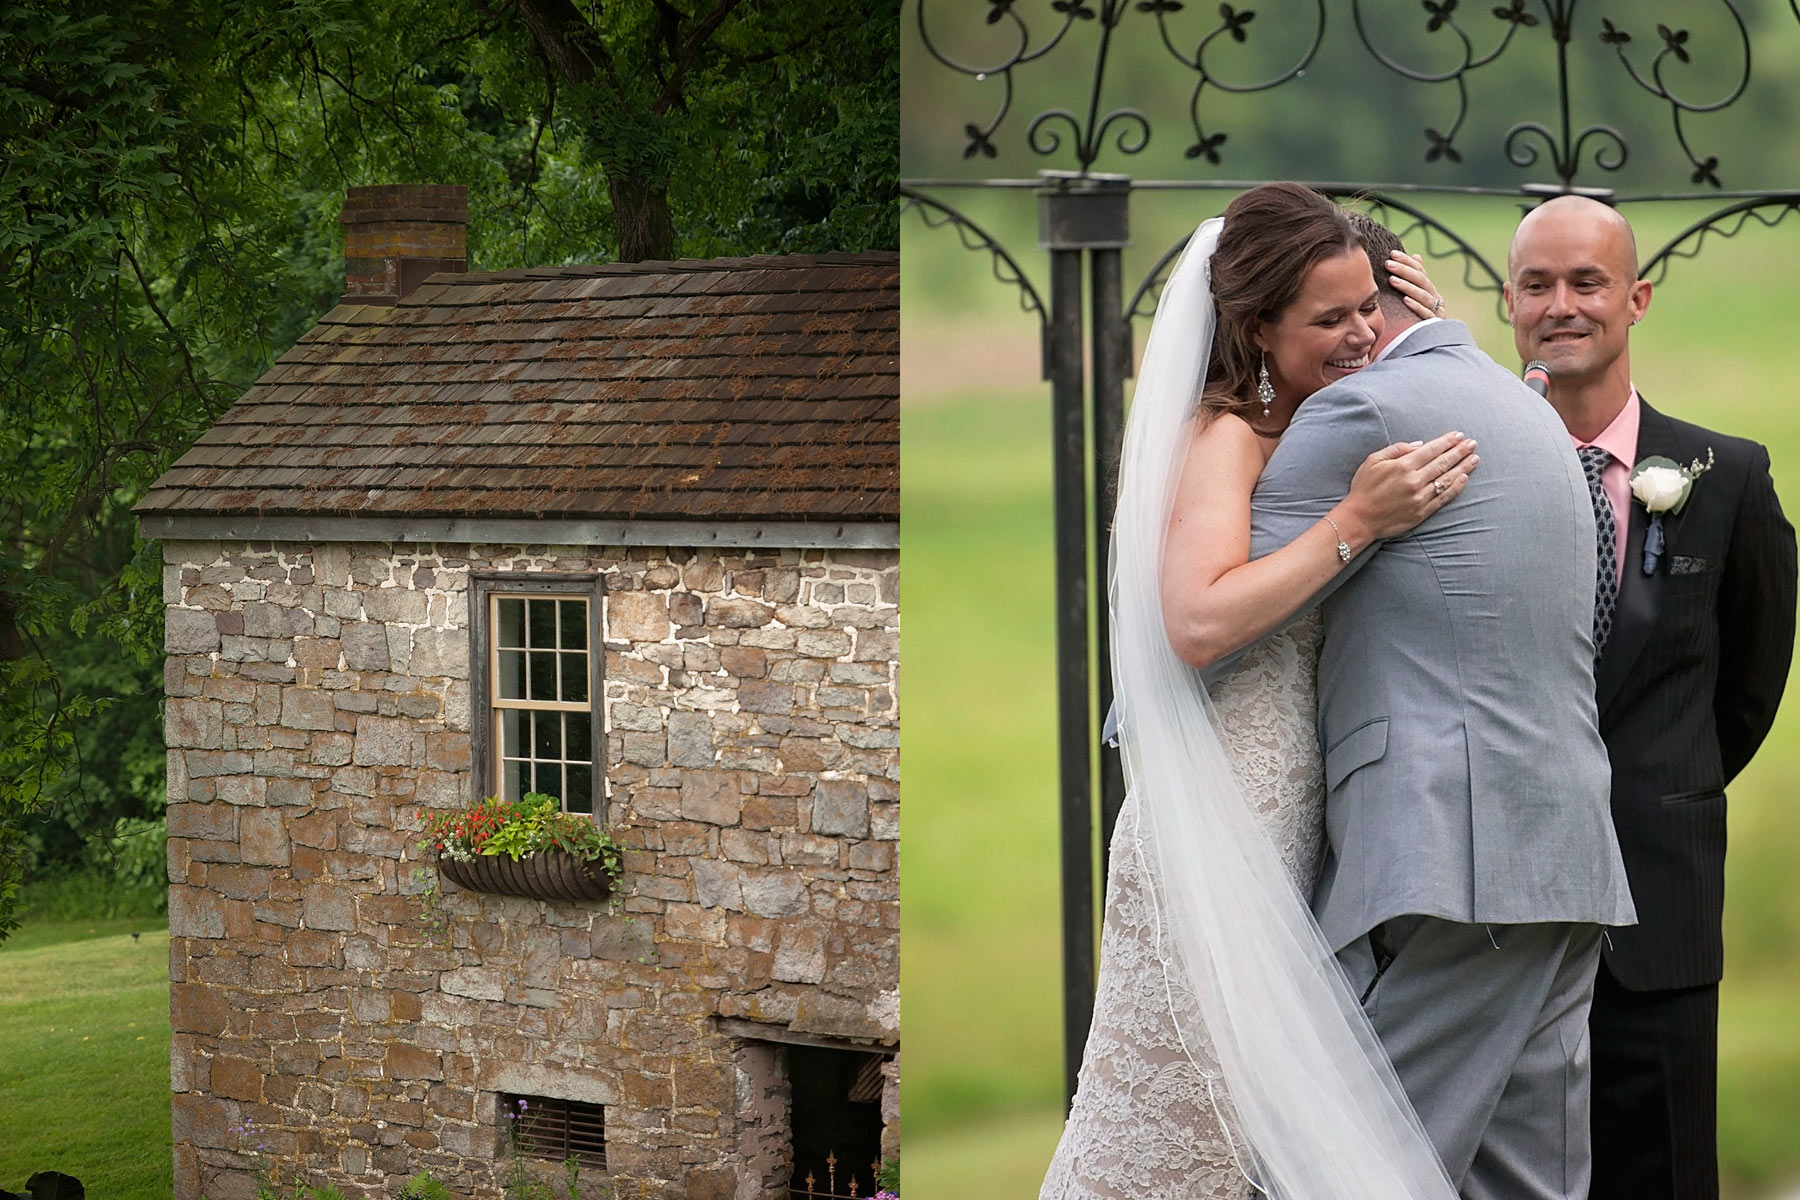 Stone springhouse alongside bride and groom sharing an embrace at the end of the wedding ceremony